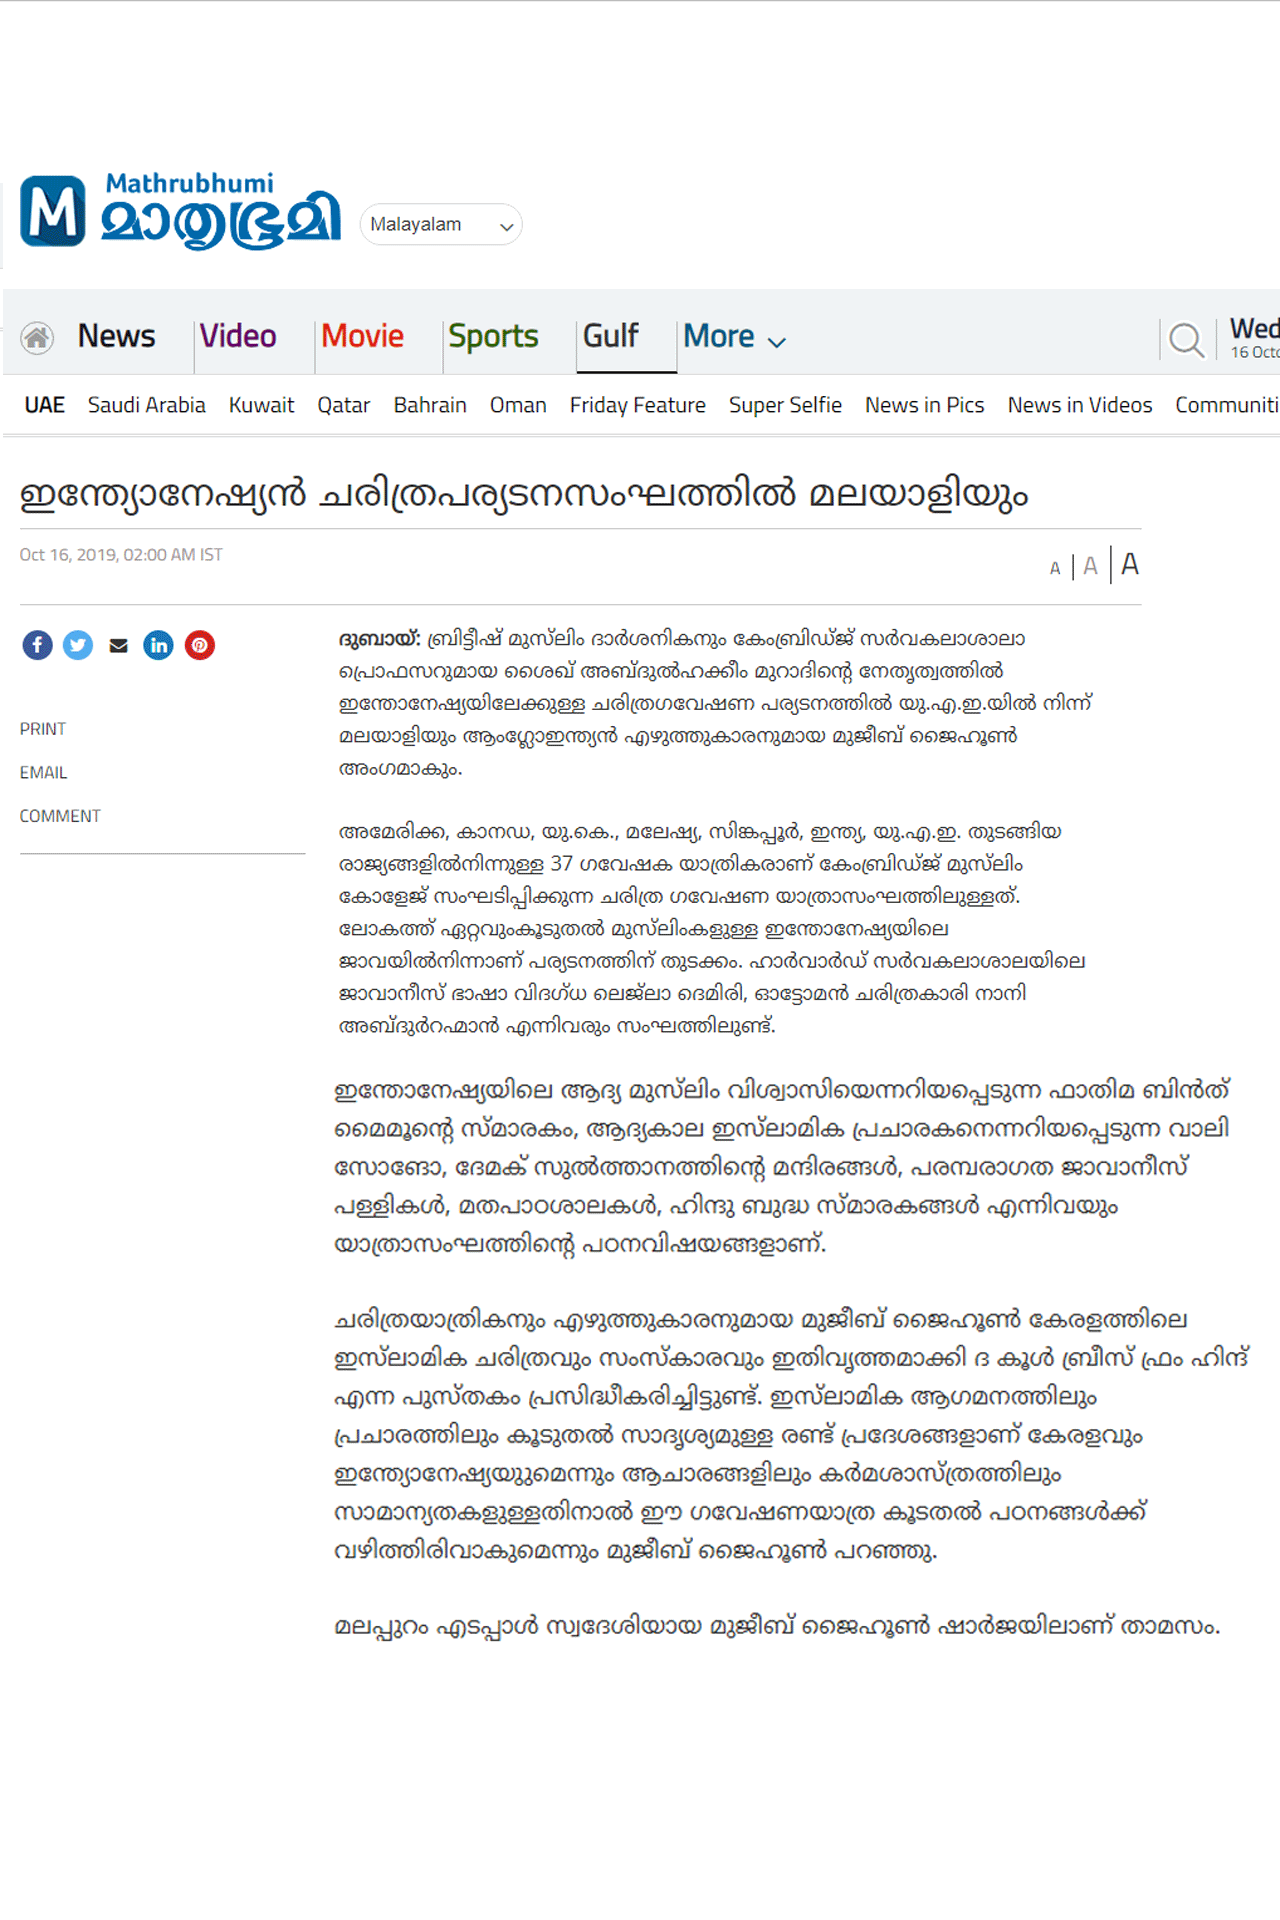 Mathrubhumi on Jaihoon's Java journey